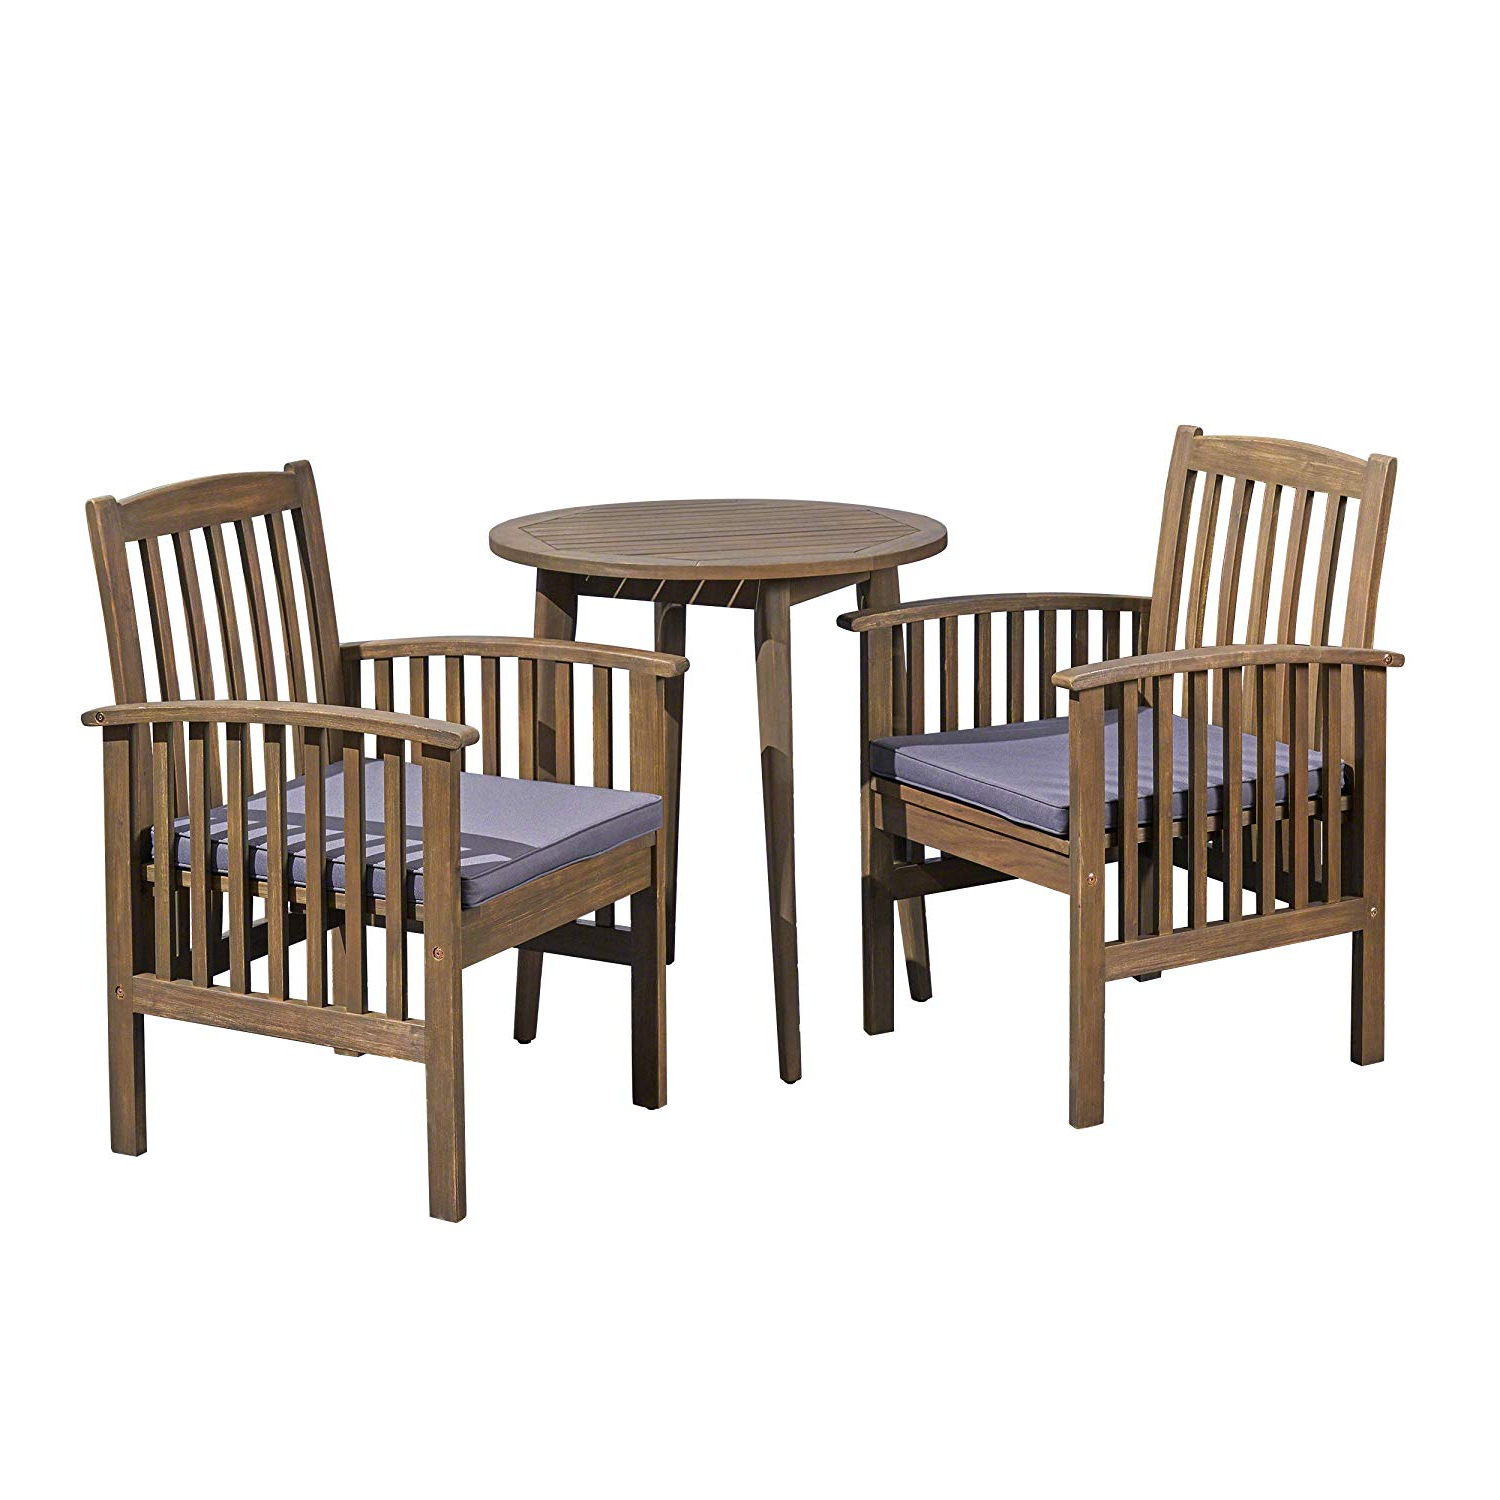 Amazon: Alma Acacia Patio Dining Set, 2 Seater Bistro Pertaining To Current Bistro Transitional 4 Seating Square Dining Tables (View 6 of 30)